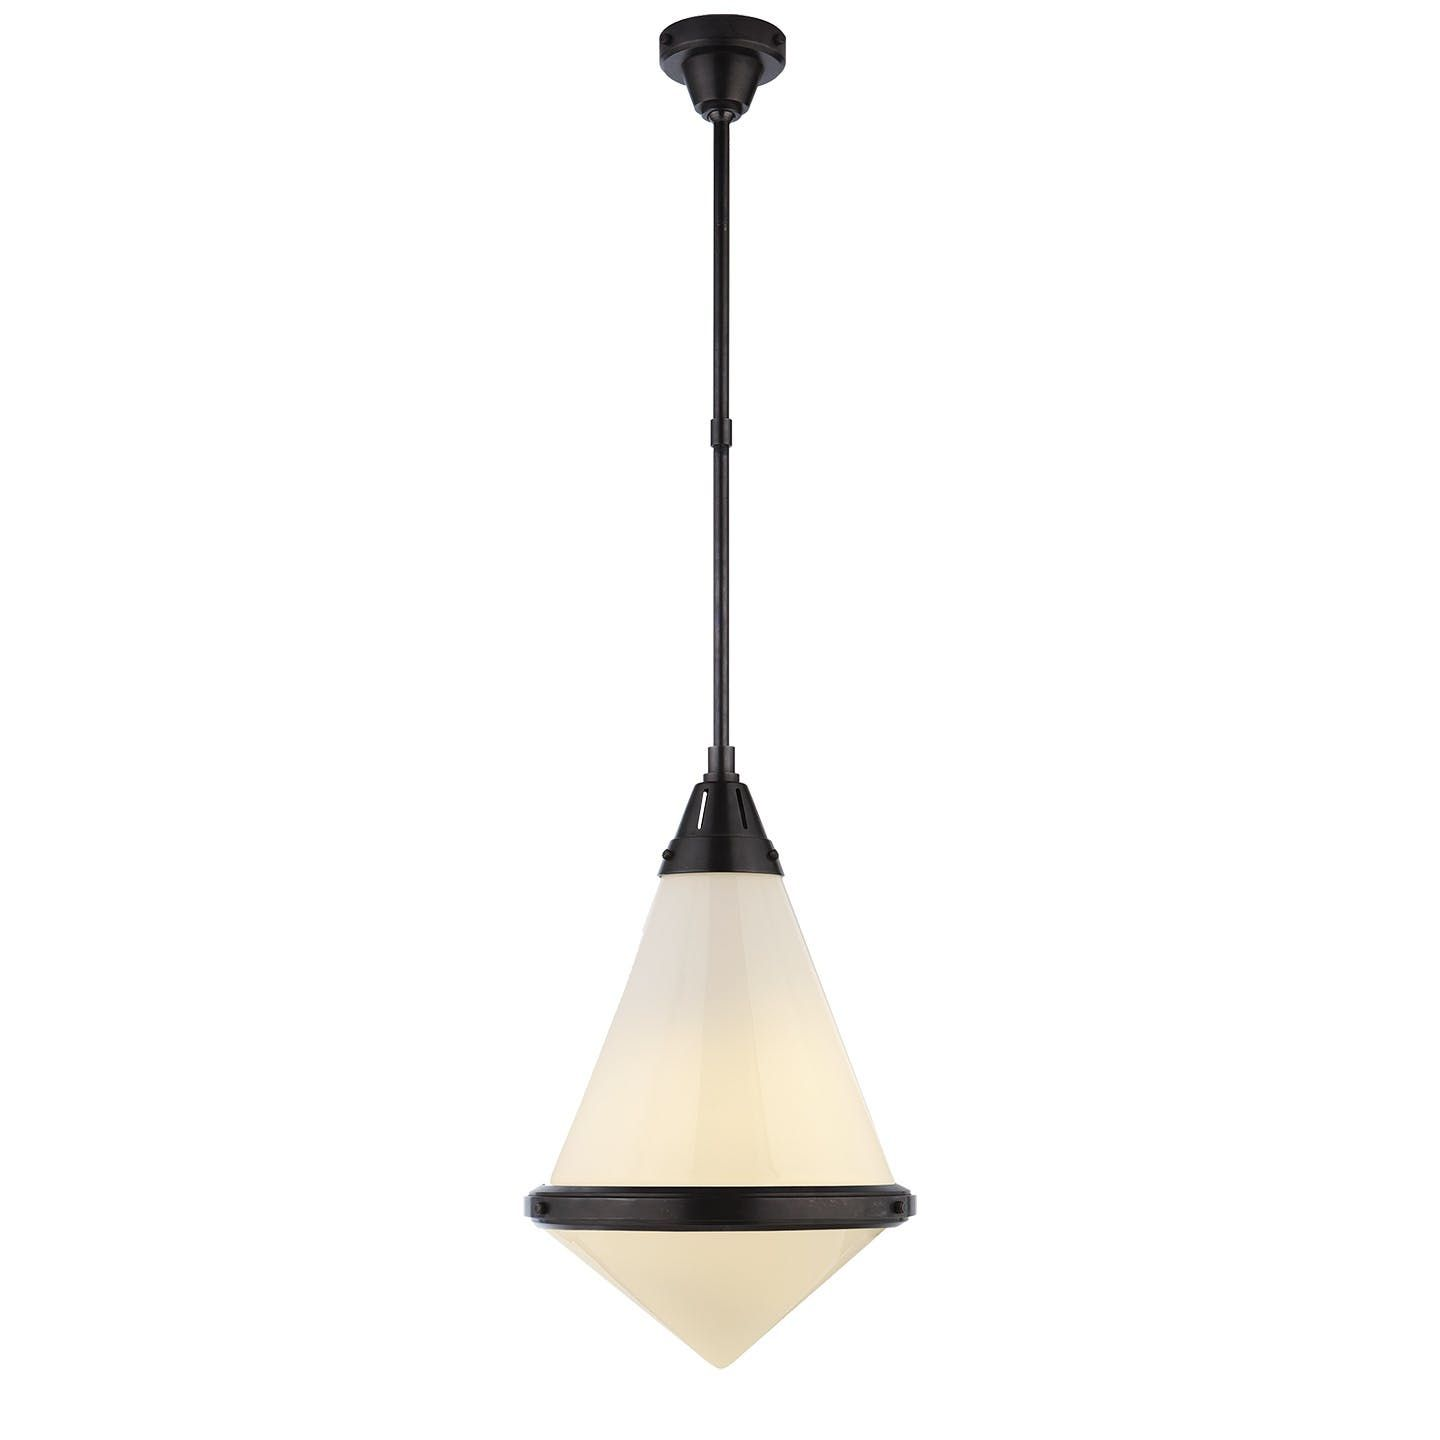 Gale Large Pendant In Bronze With White Glass  Avenue